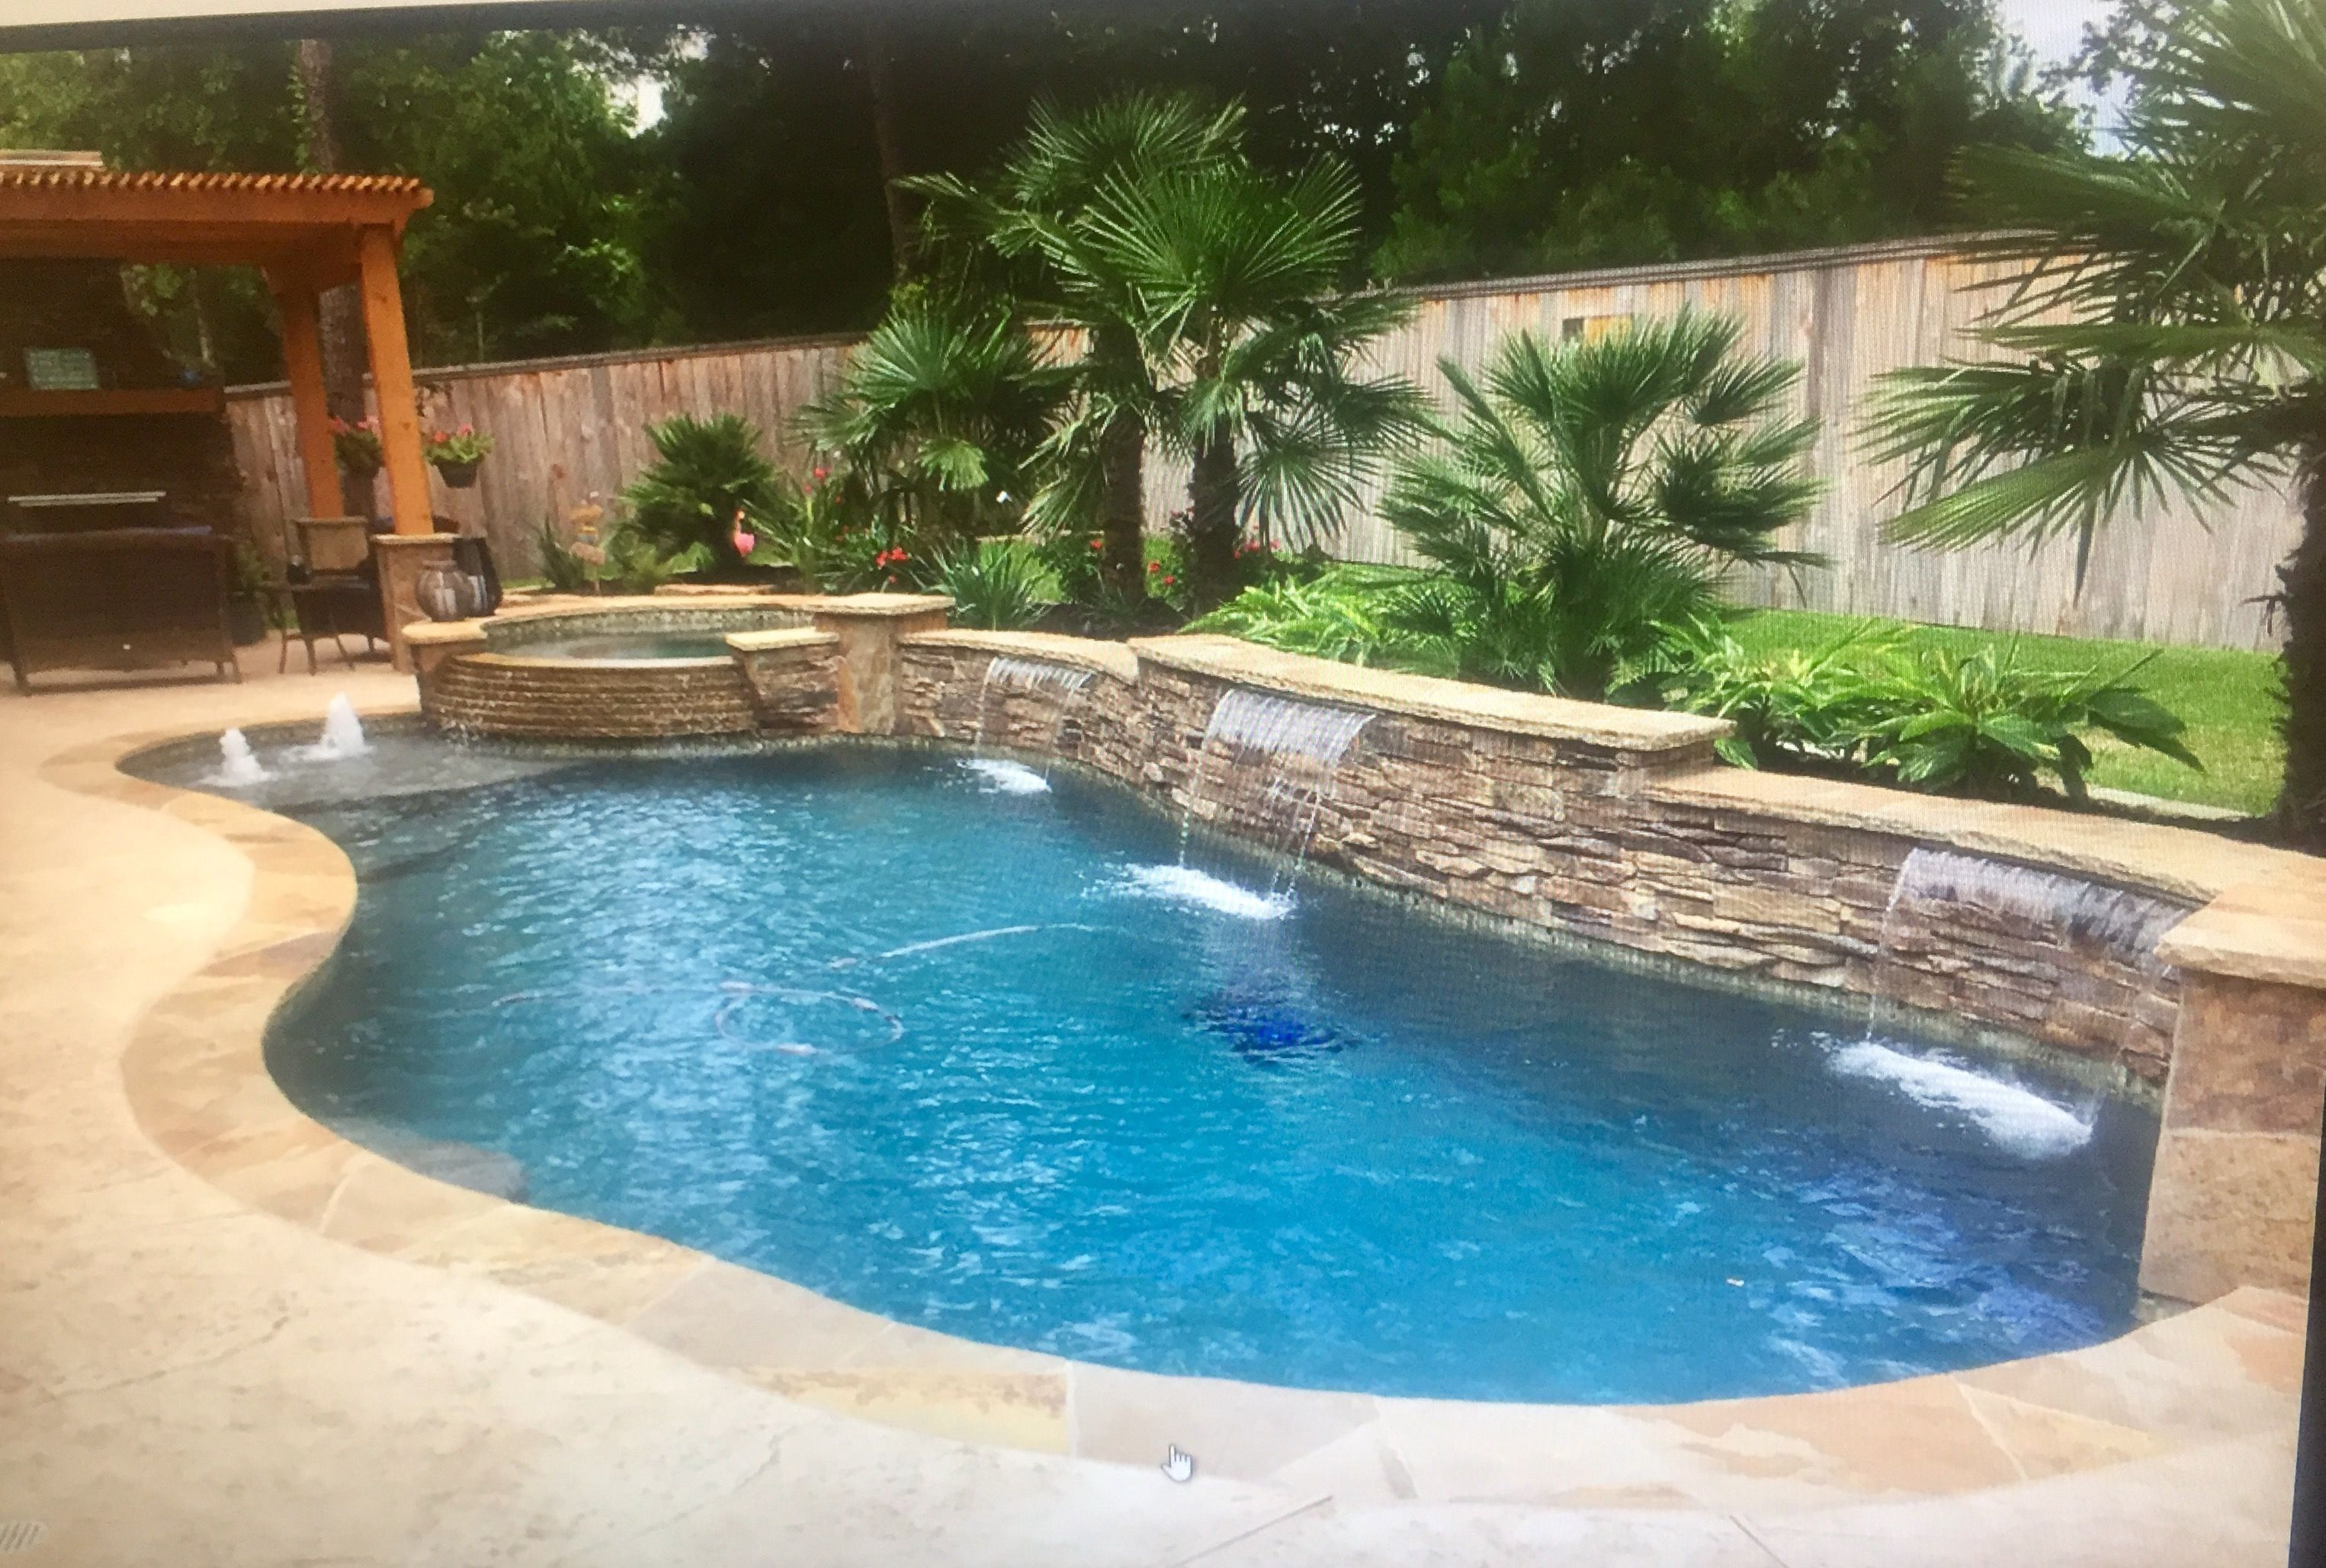 Average Cost Of An Inground Swimming Pool Average Cost Inground Pool Pool Backya Pools Backyard Inground Backyard Pool Landscaping Swimming Pools Inground